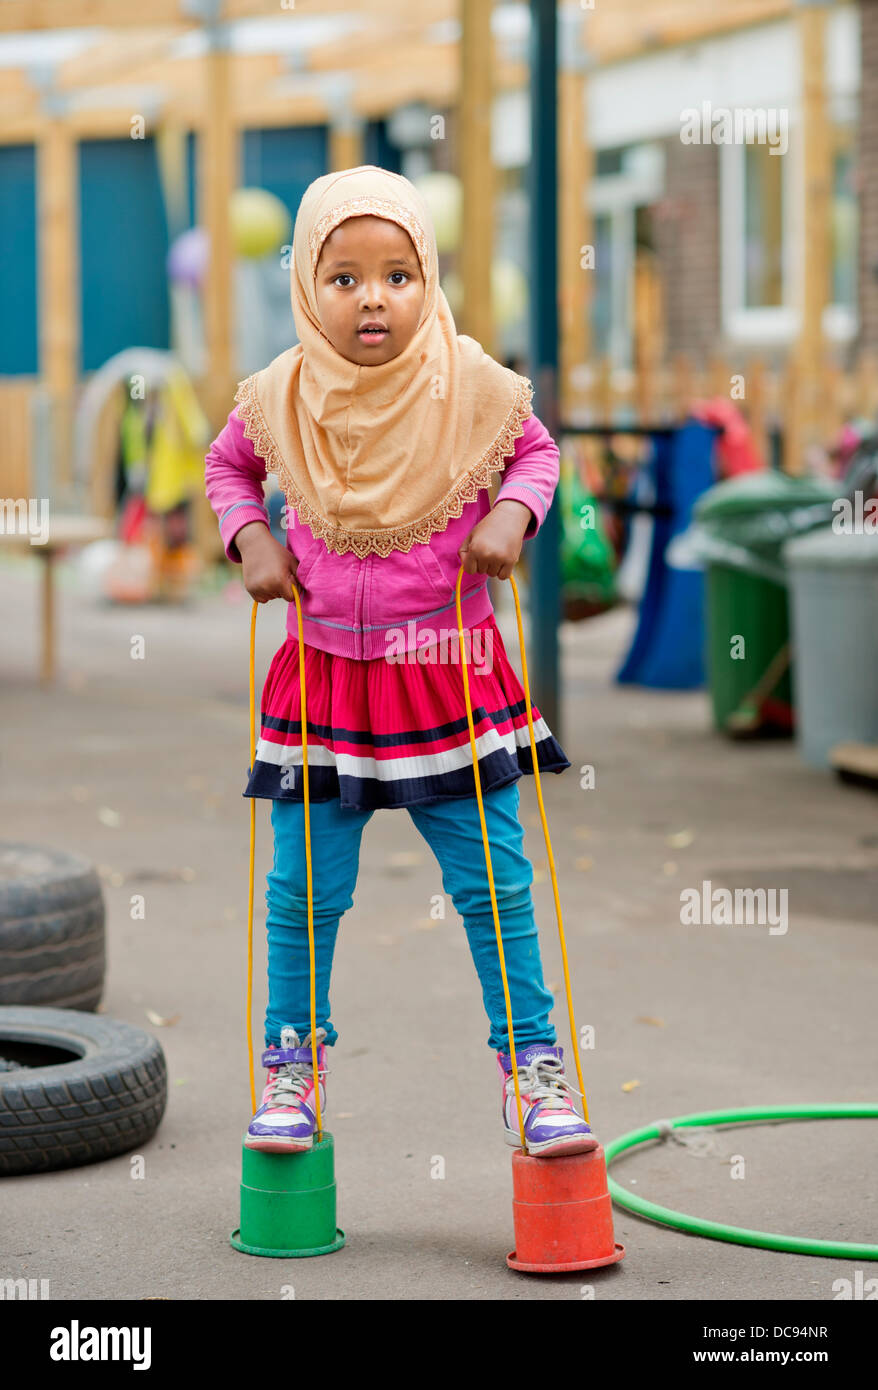 The St. Pauls Nursery School and Children's Centre, Bristol UK  - A Somali girl playing on stilts in the playground. - Stock Image